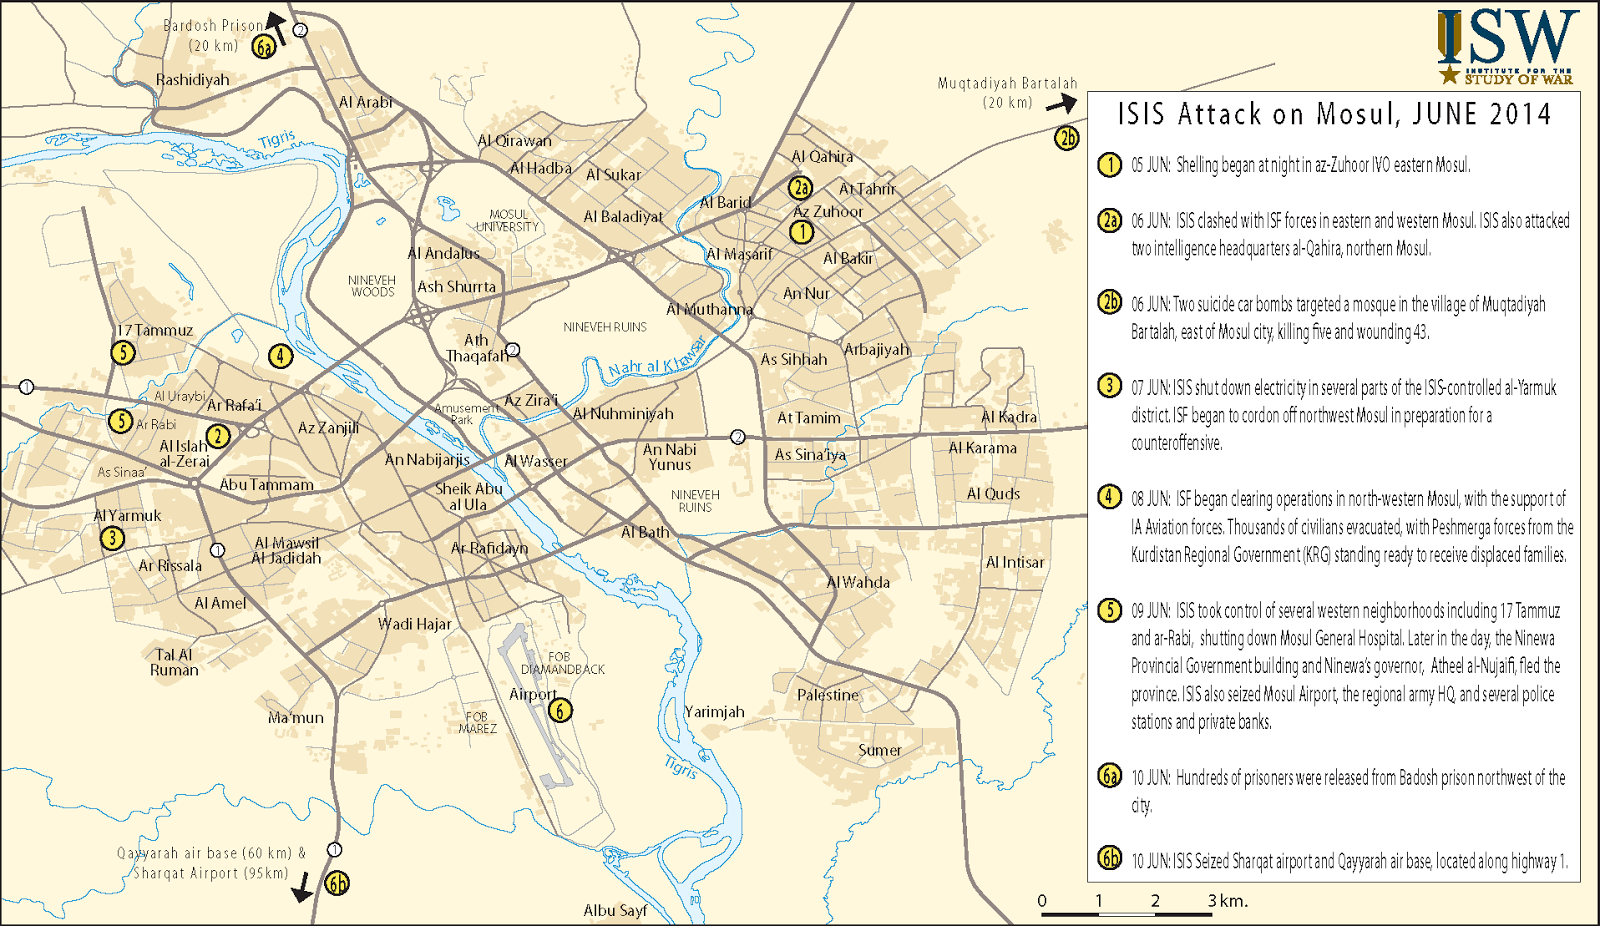 ISW Blog Recent Chronology of the Fall of Mosul